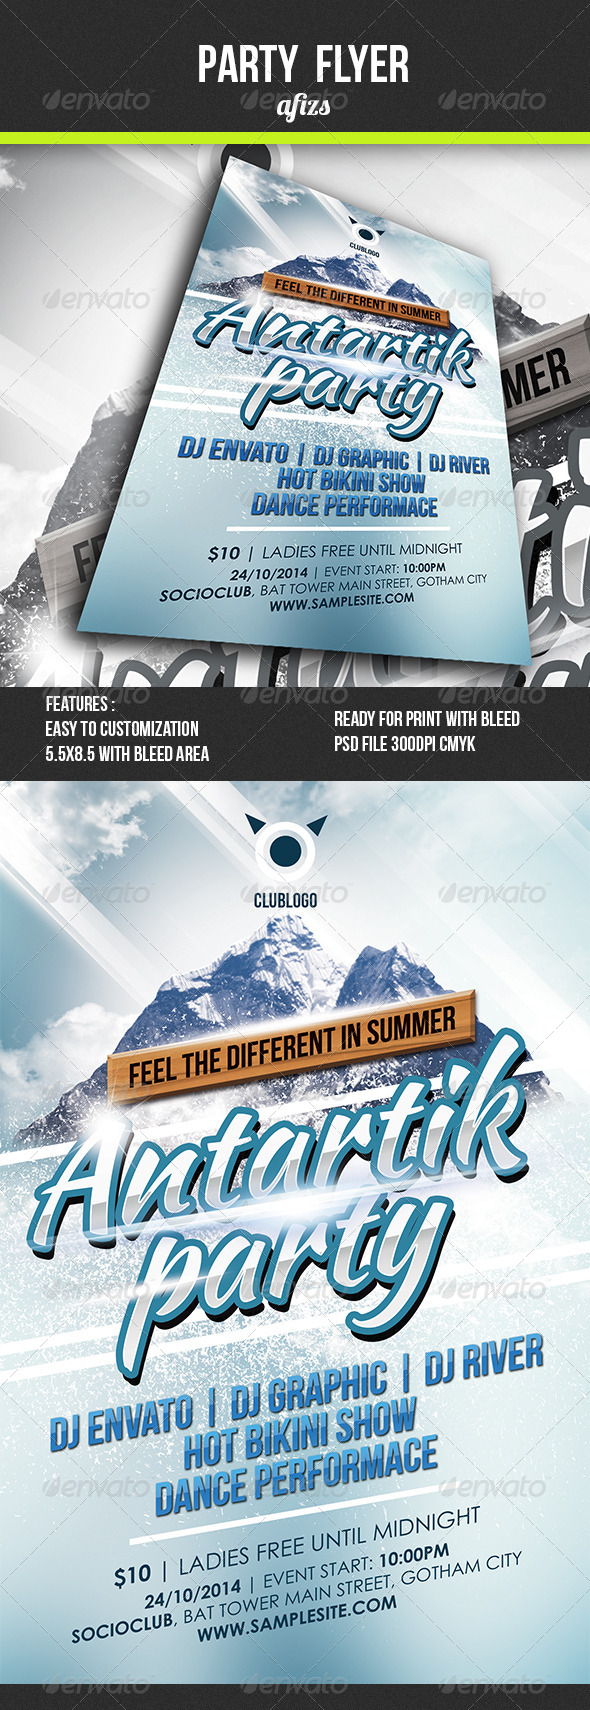 GraphicRiver Party Flyer 4980358